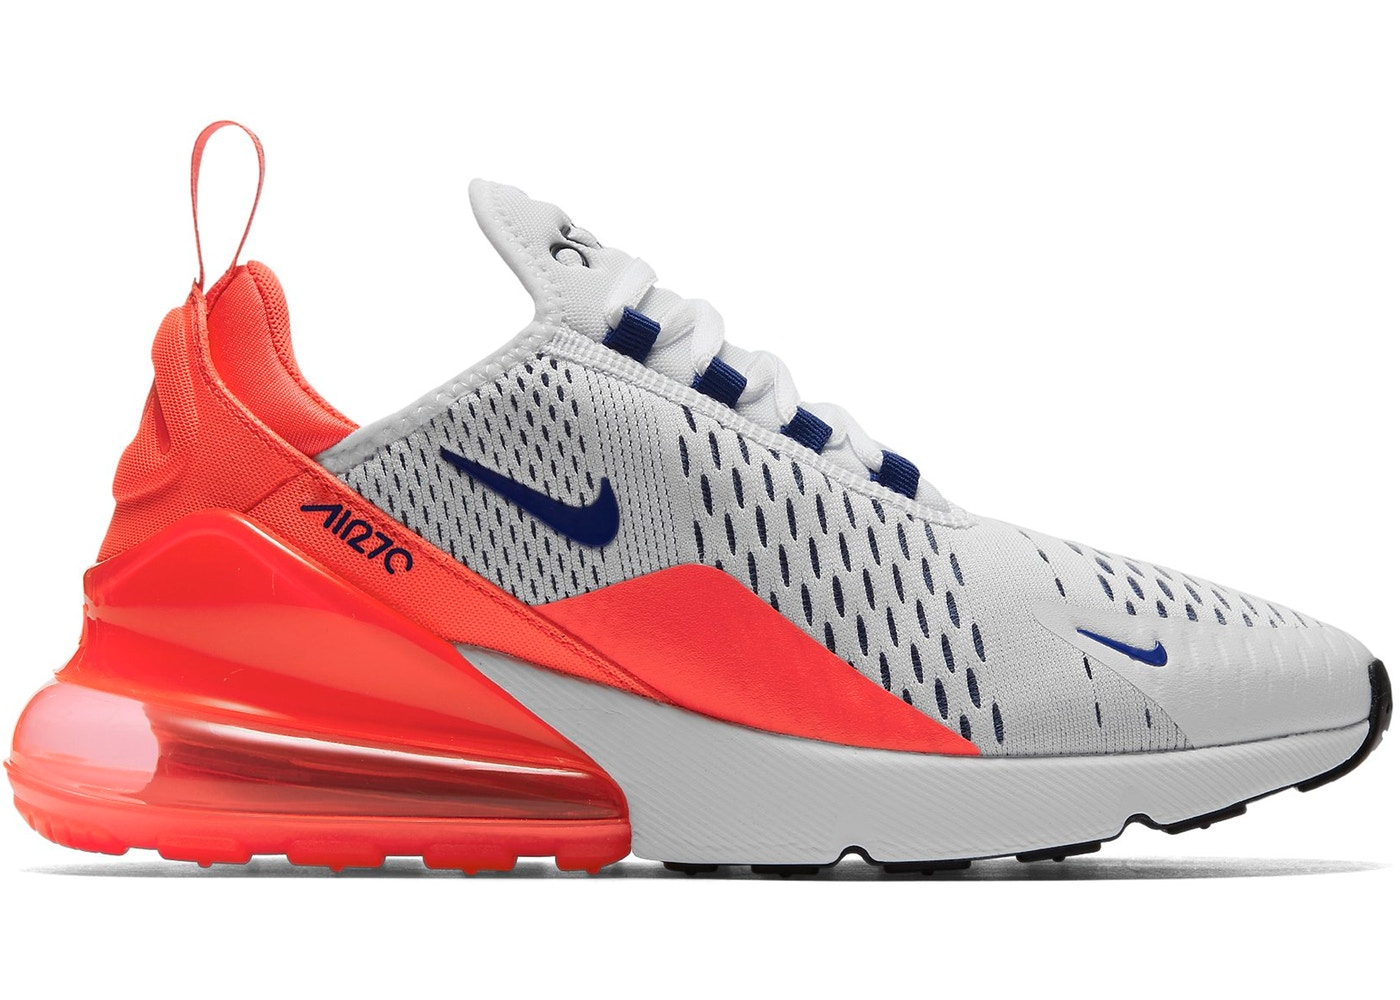 388677a29c735 Air Max 270 Ultramarine (W) - AH6789-101